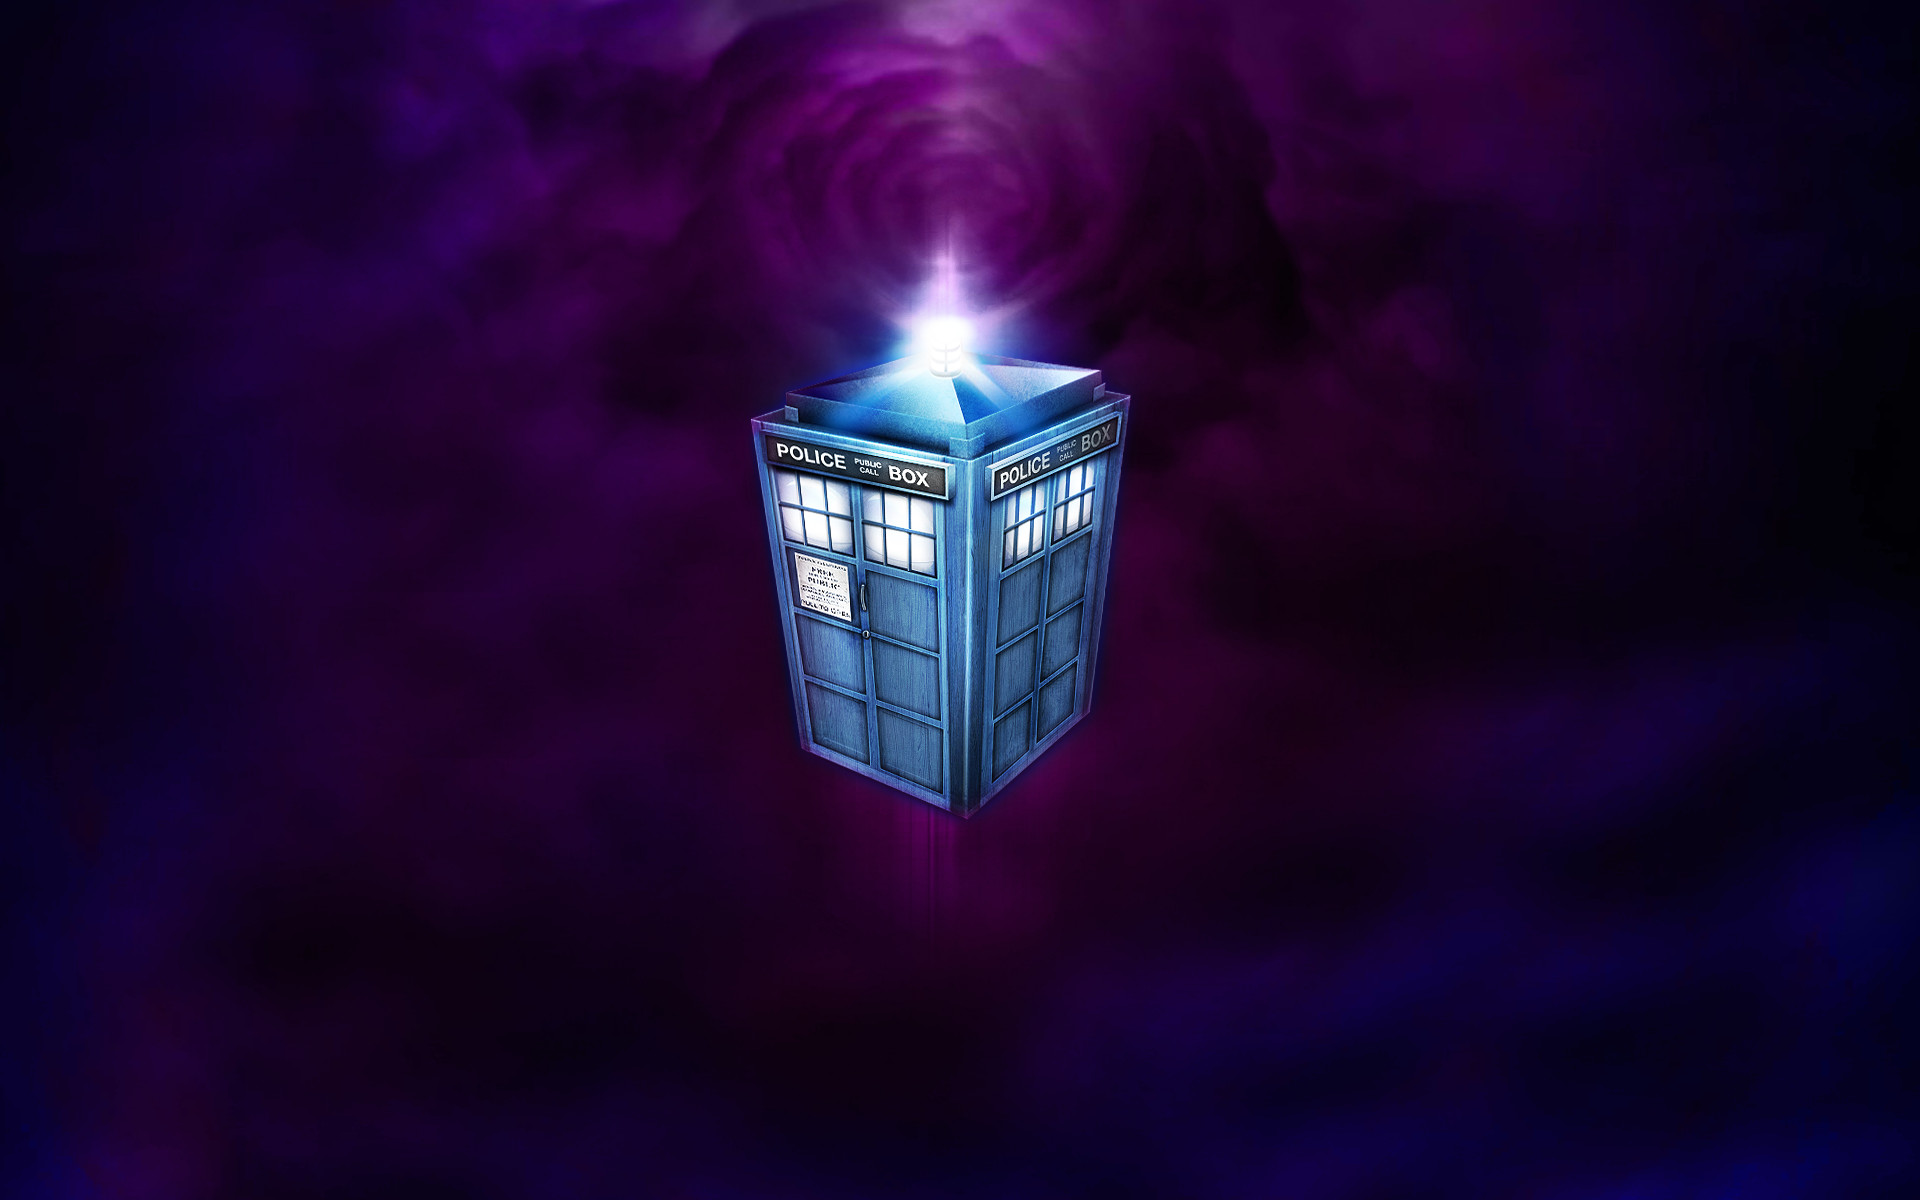 Full HD Images, Doctor Who Moving – Hussain Measor